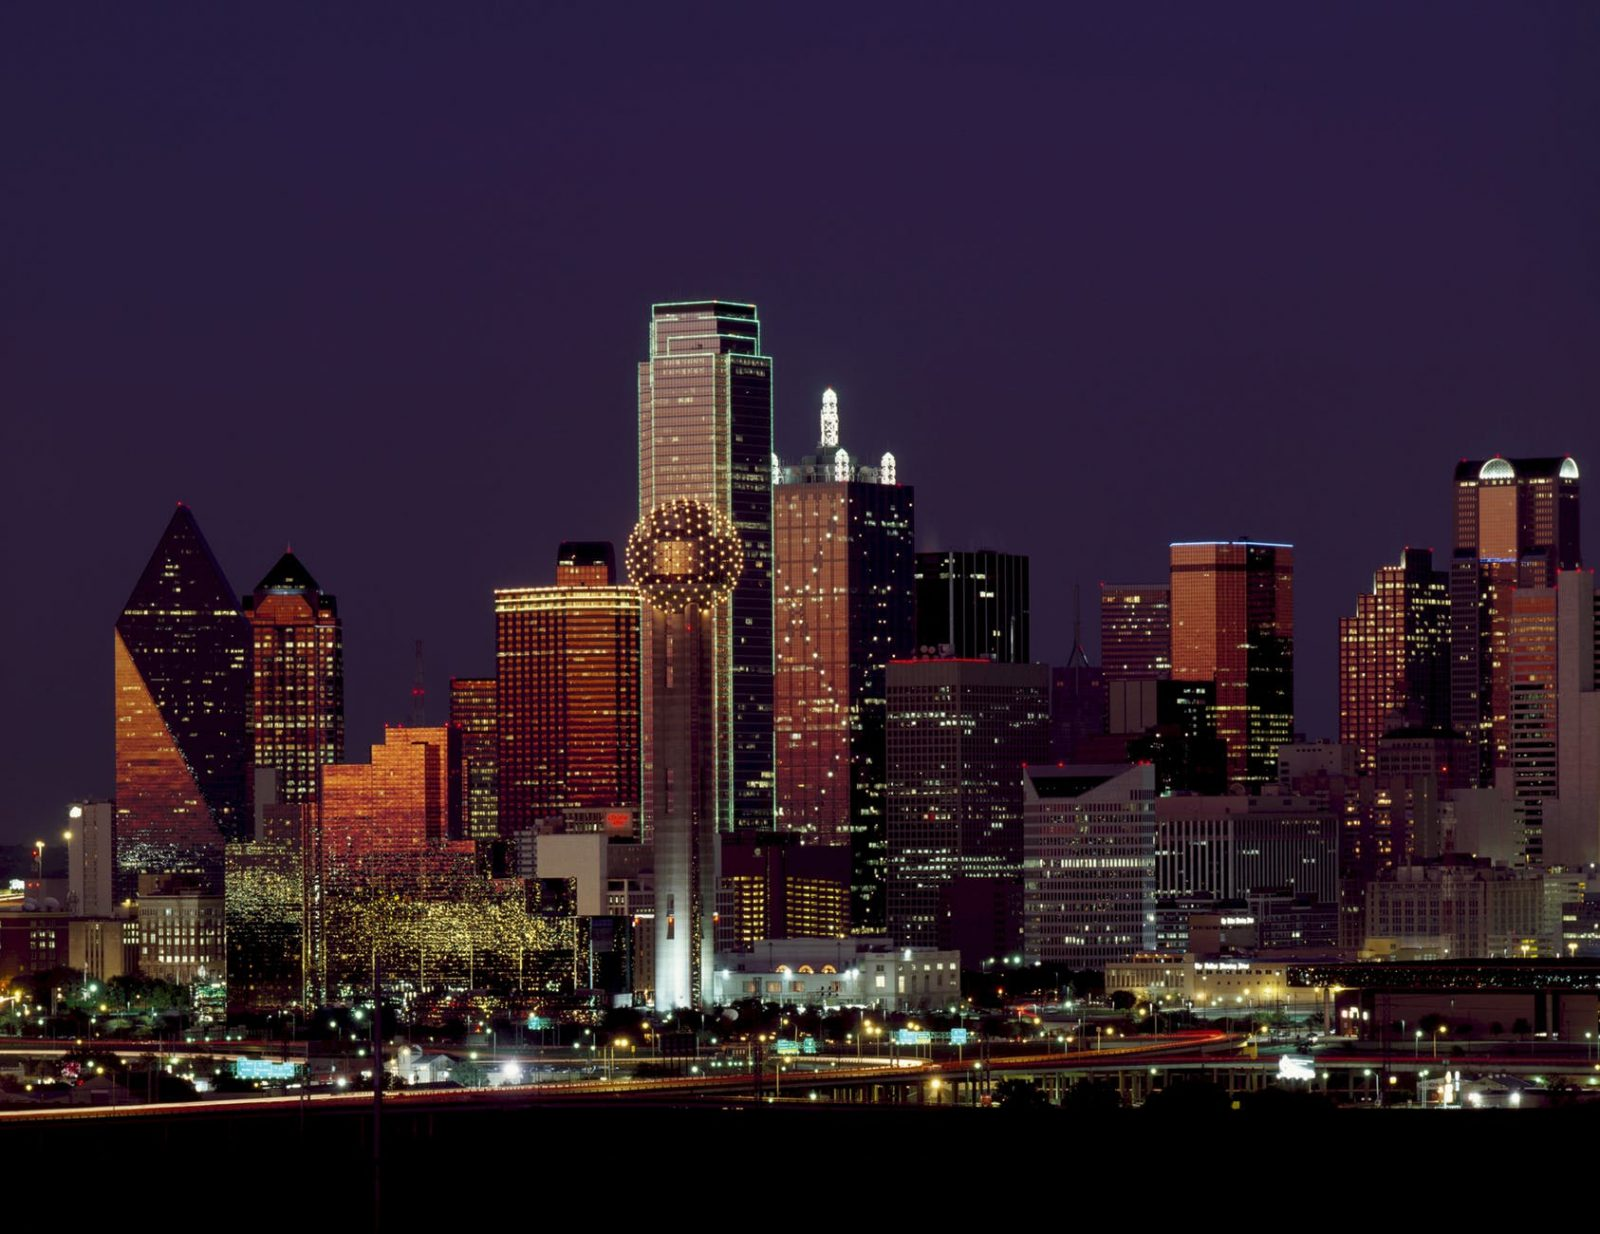 Flight Deal Round Trip From Los Angeles Area to Dallas Area #losangeles #dallas #extendedweekend